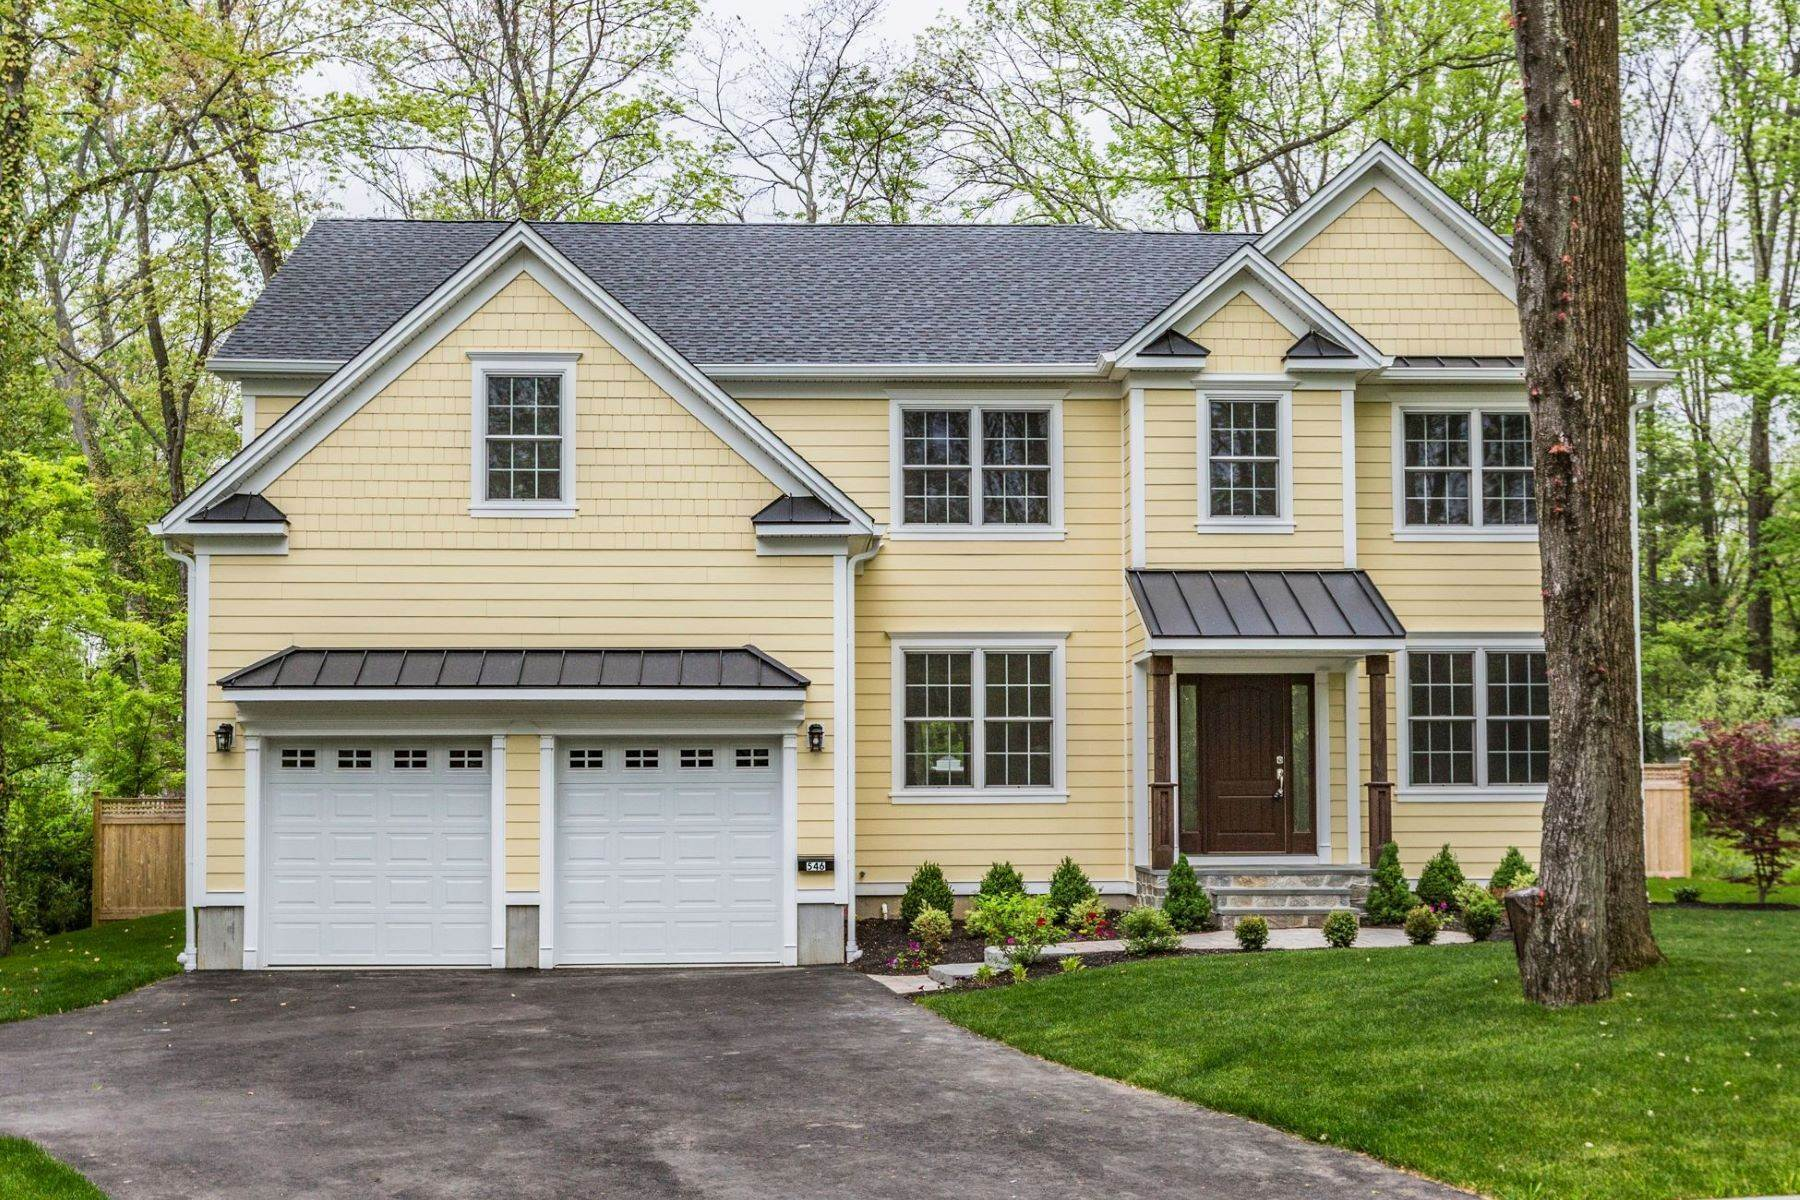 Single Family Homes for Sale at Eye-Catching Finishes Shine In This Like-New Home 546 Ewing Street, Princeton, New Jersey 08540 United States